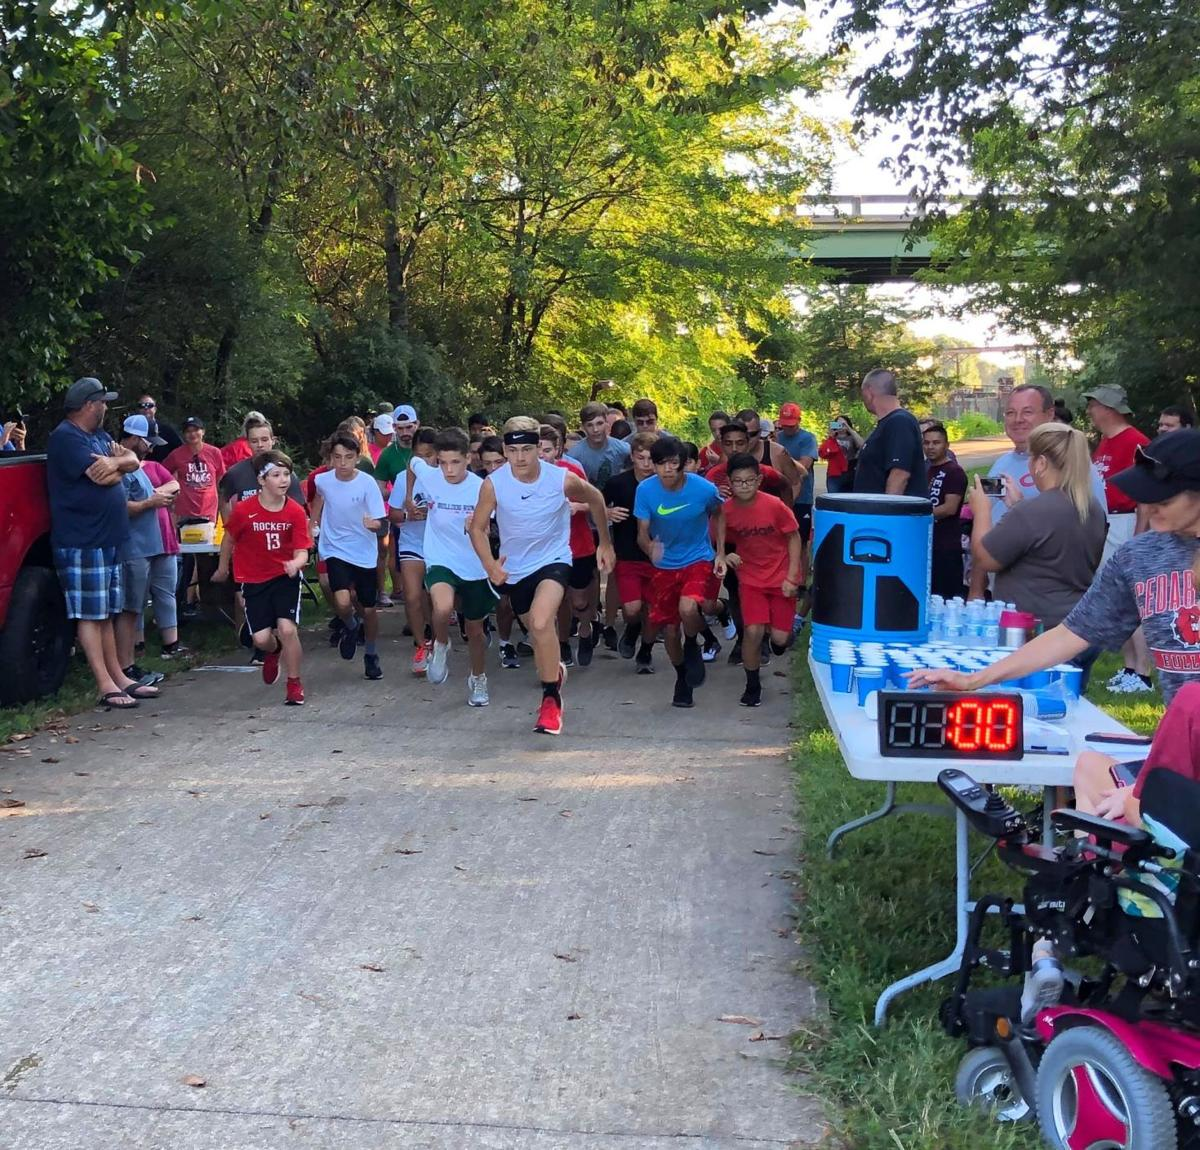 Bulldog 5K Road Race held over the weekend